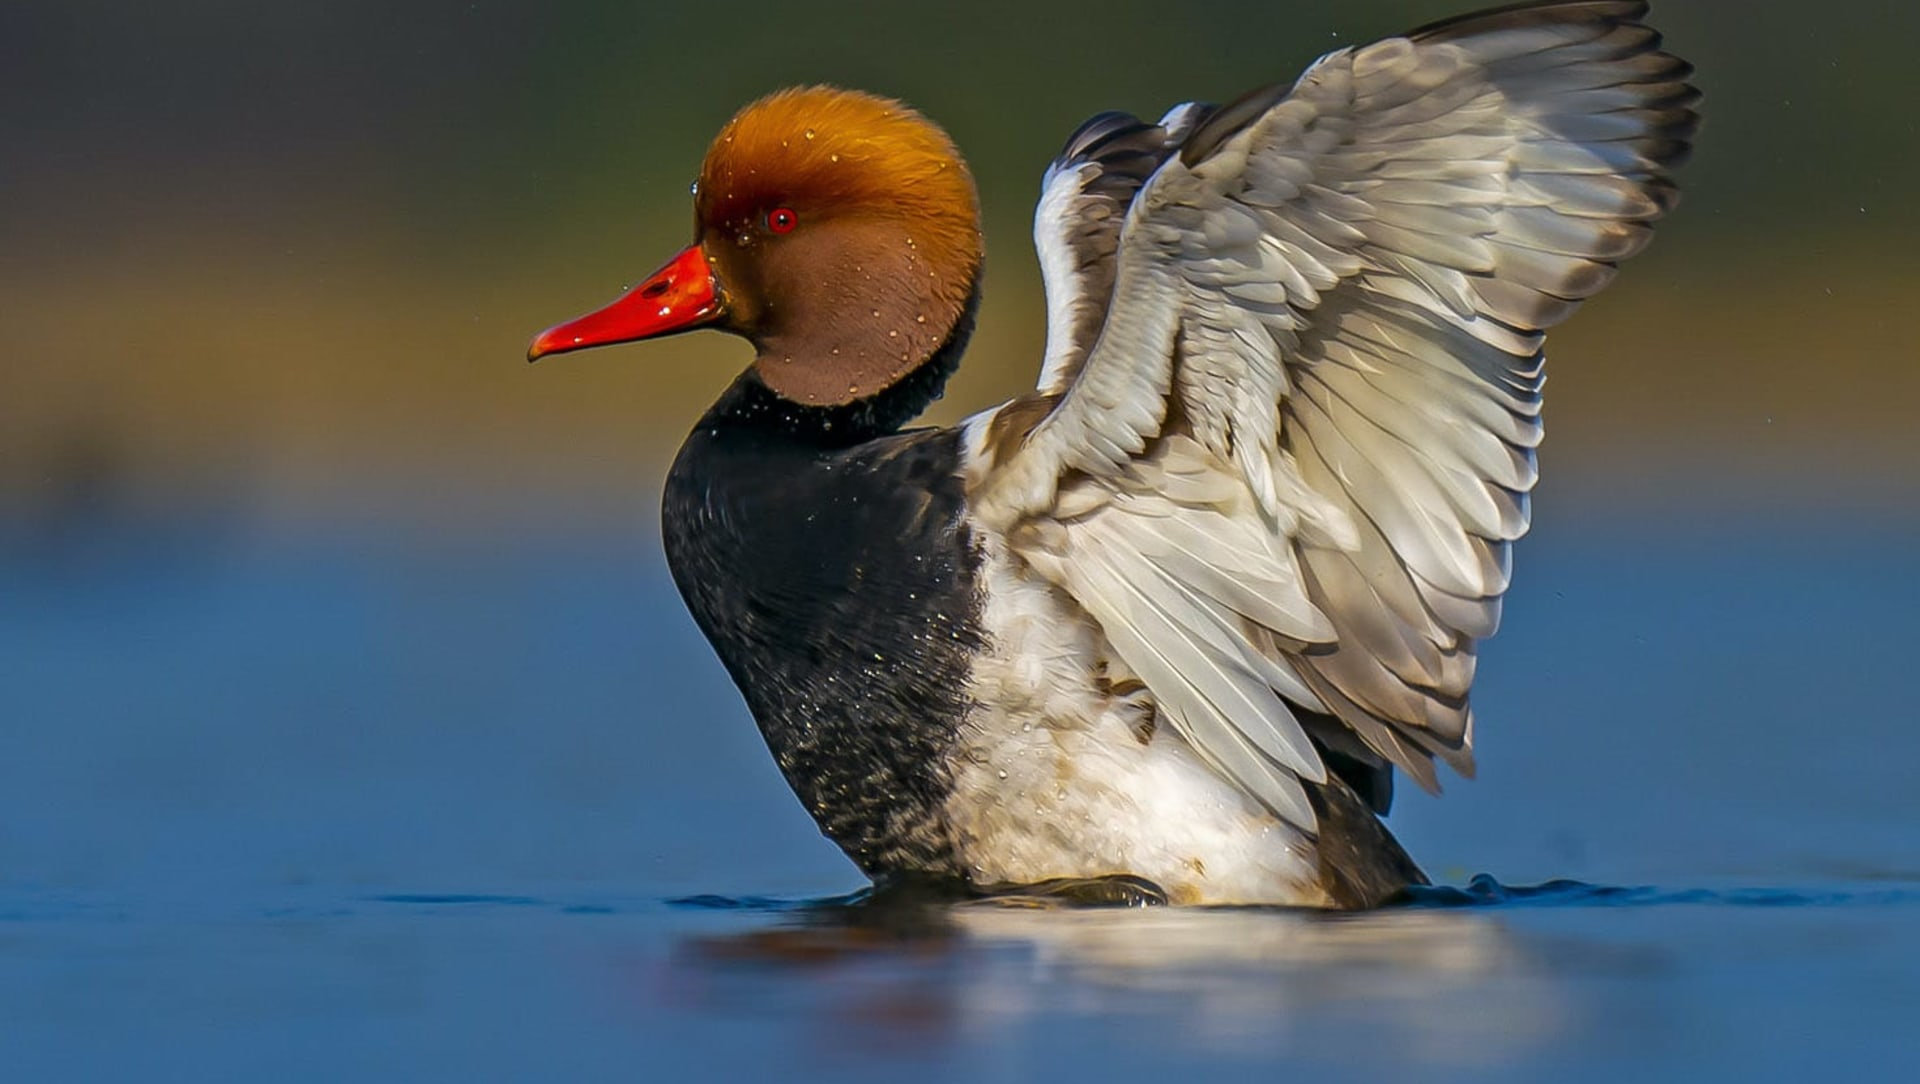 Delightful Ducks: From the Flamboyant to the Austere